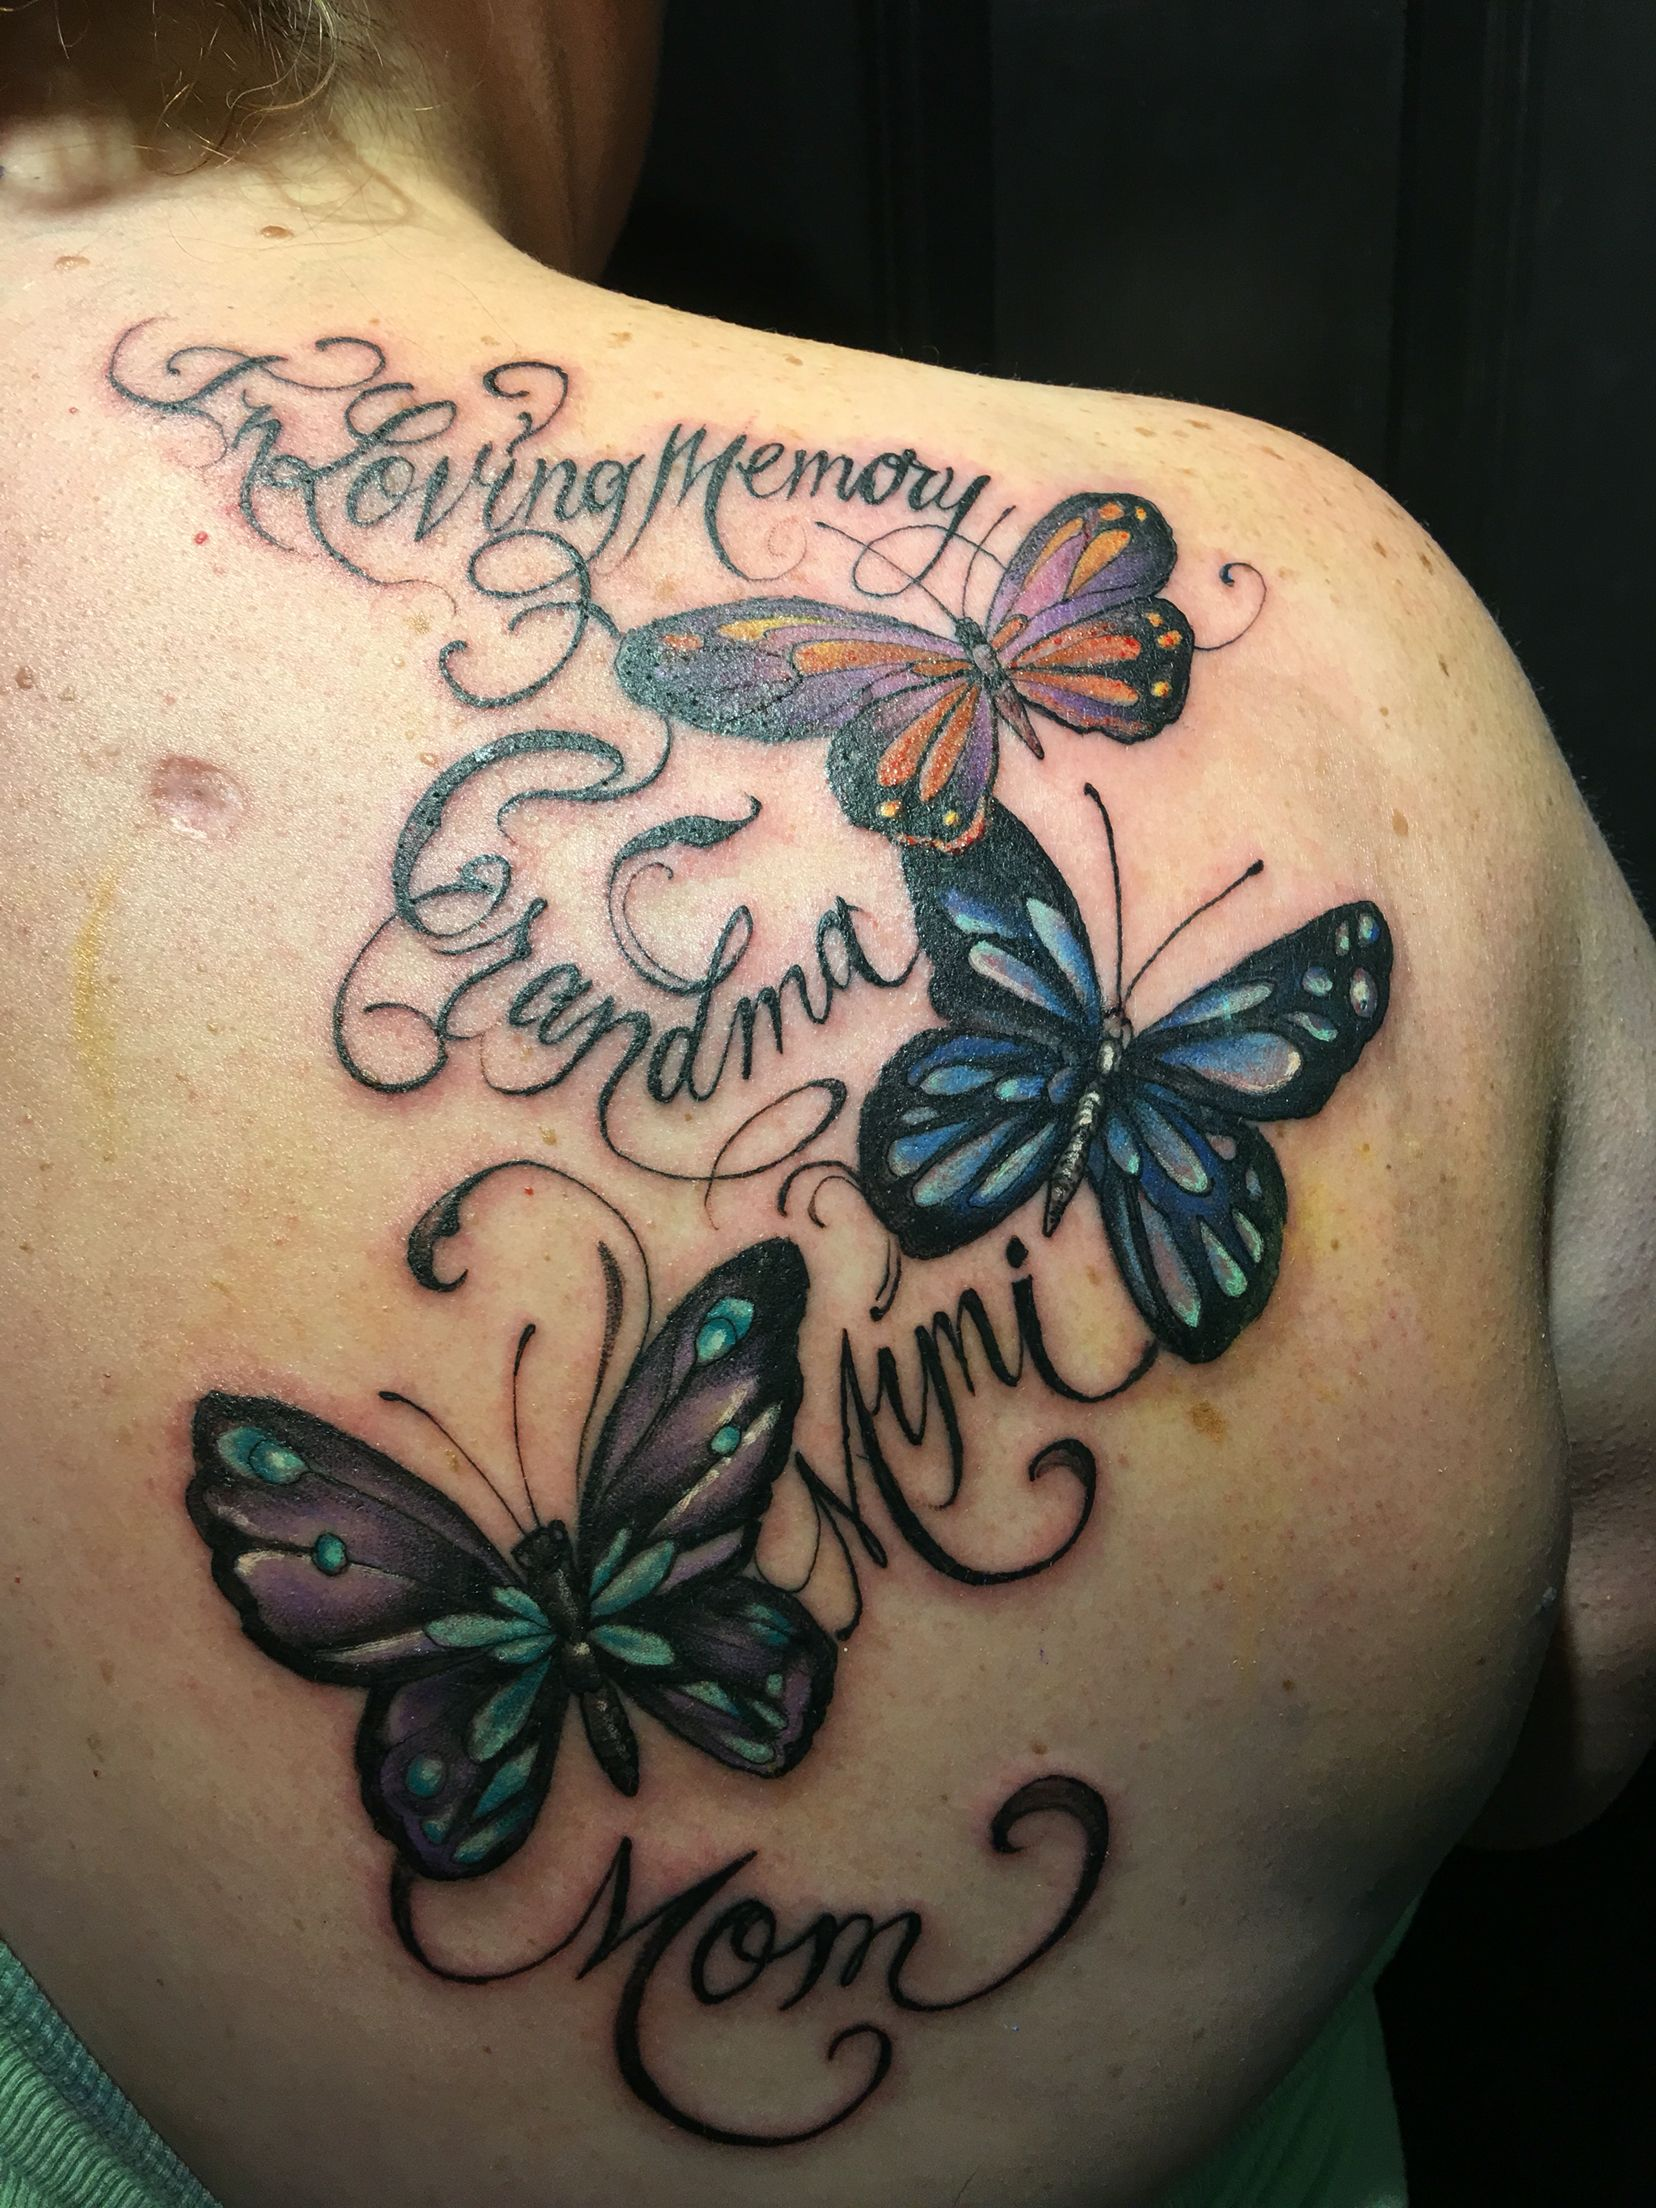 2229bbd7c Beautiful butterfly tattoo in memory. Find this Pin and more on Tattoos ...